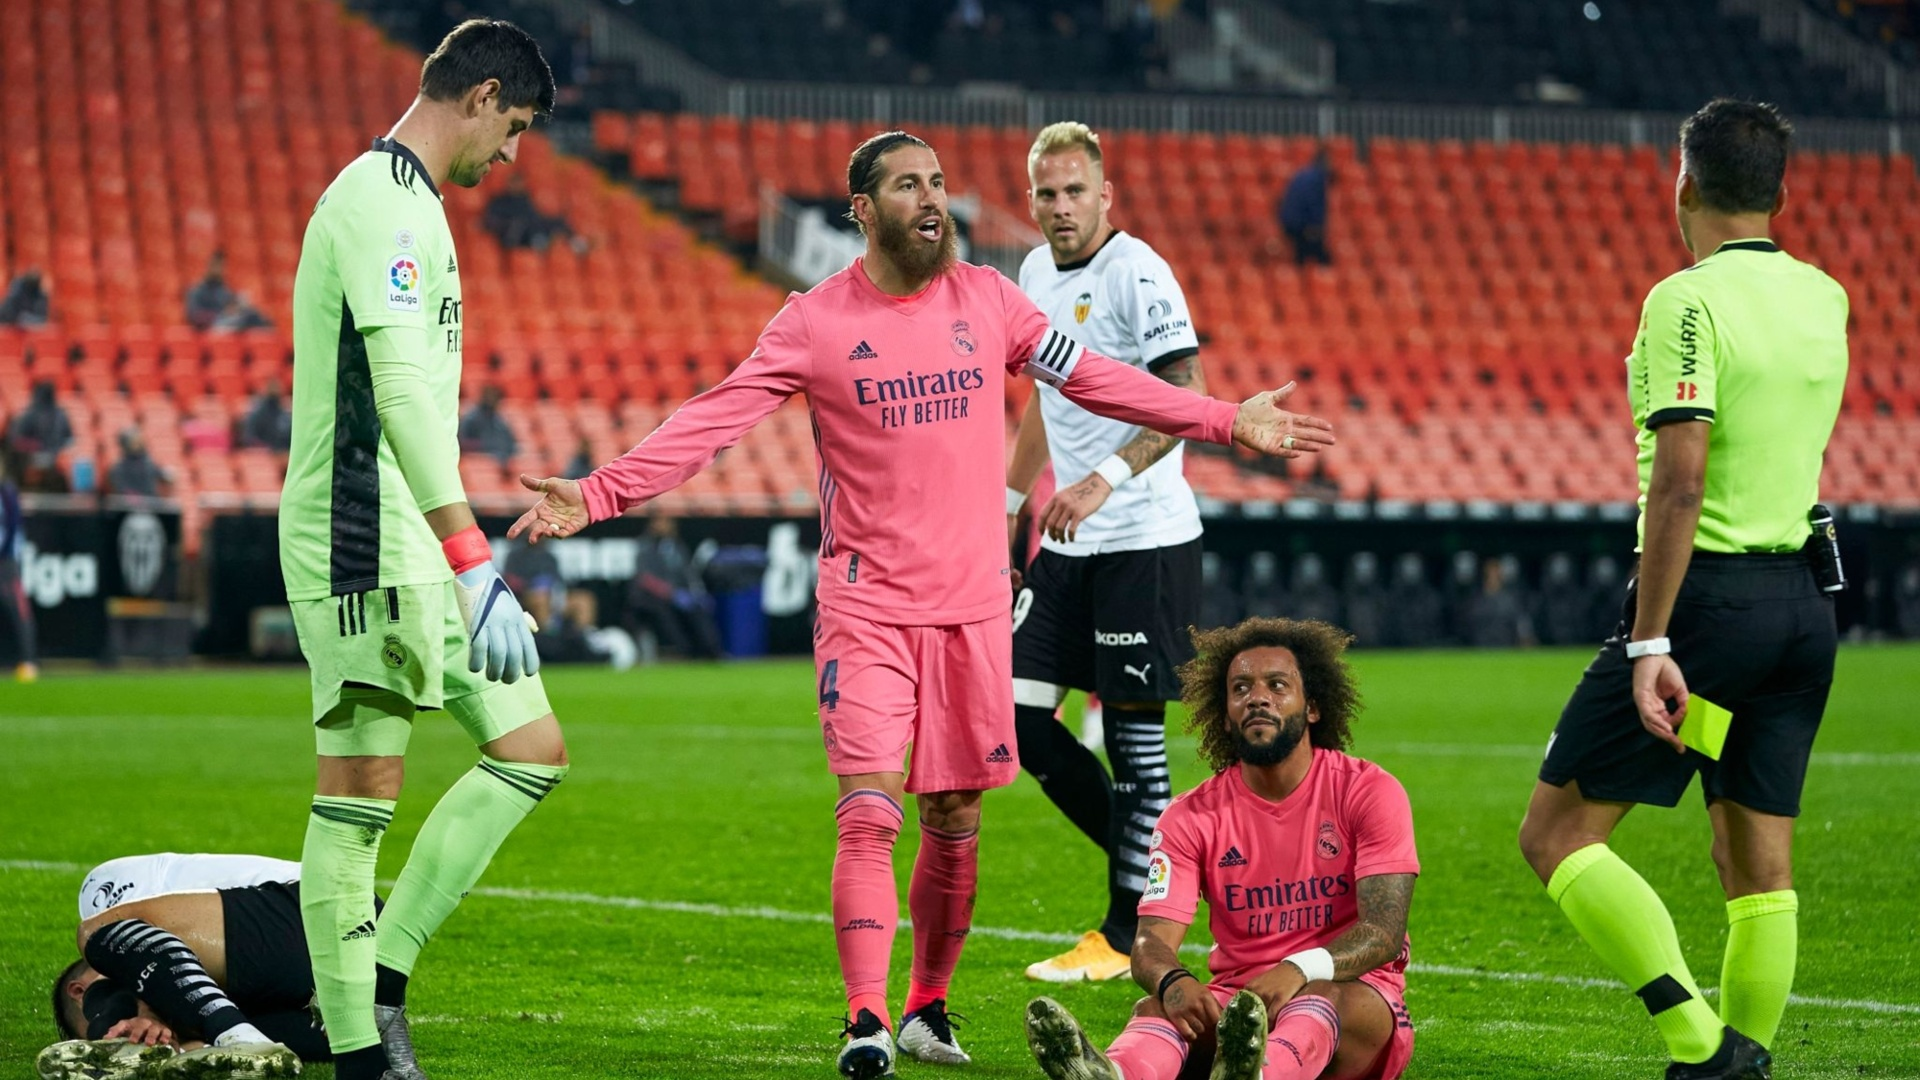 Match Report: Valencia 4-1 Real Madrid